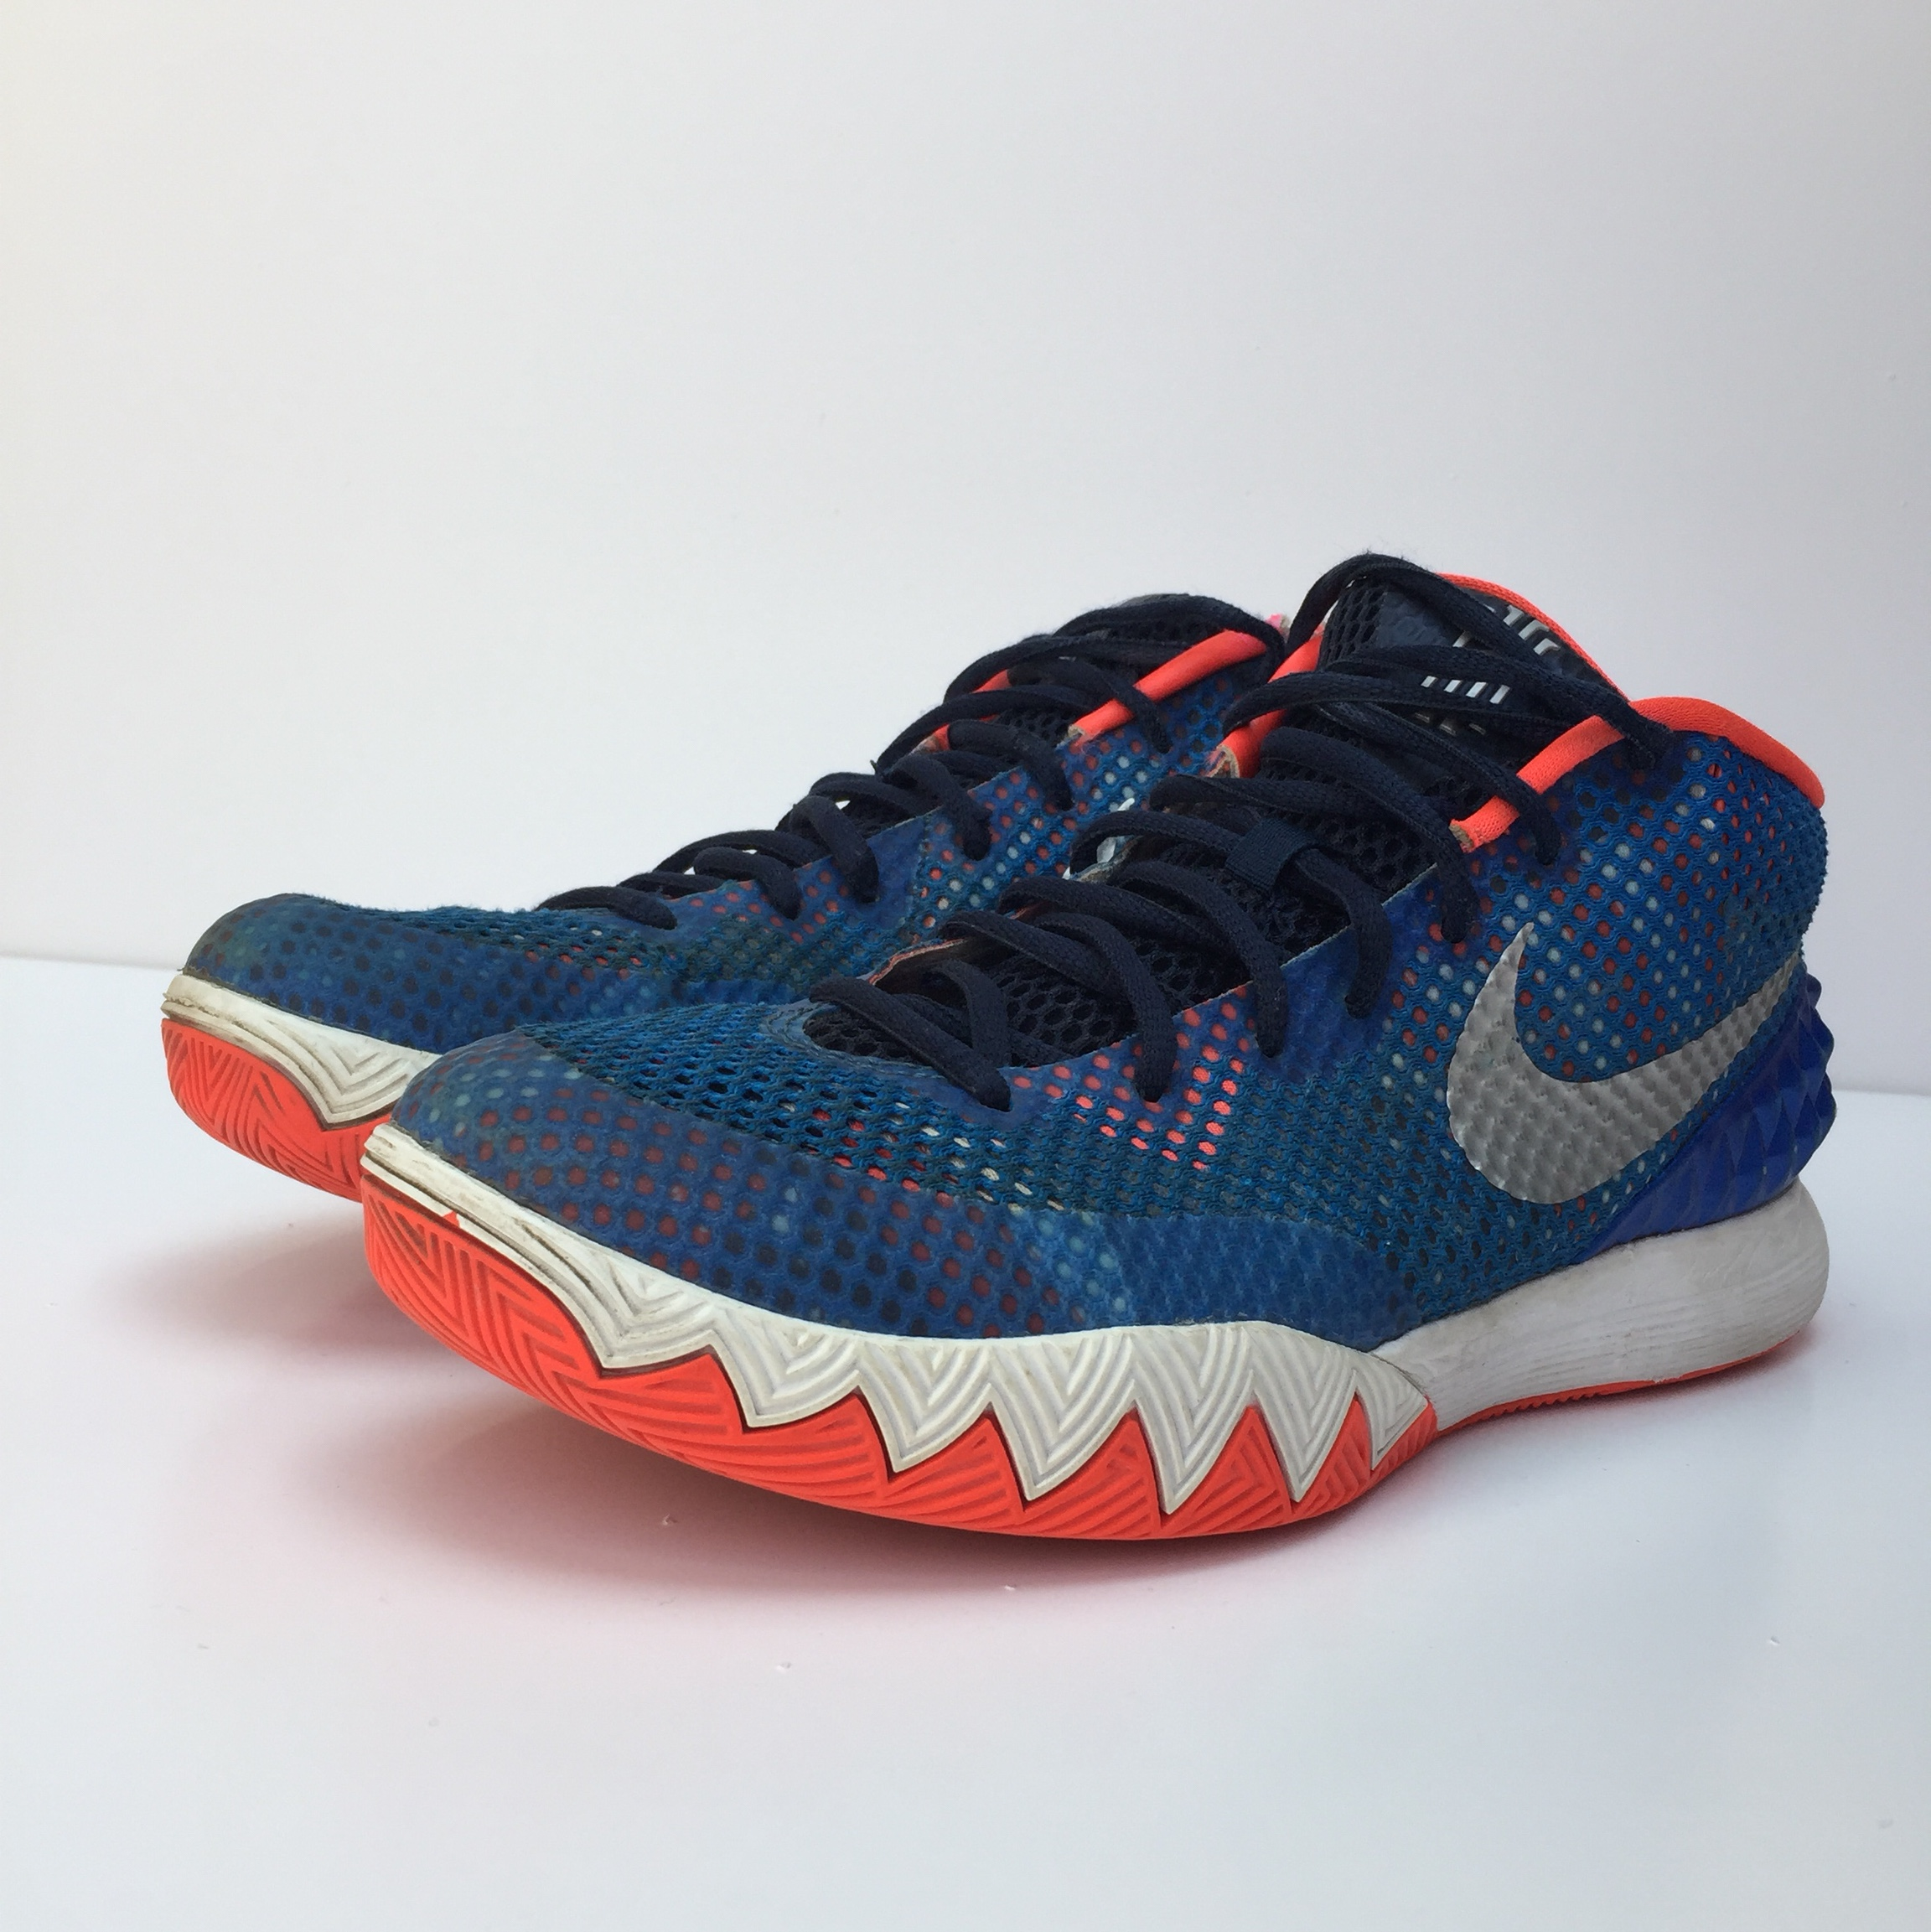 detailed look b18b3 7f2d2 Nike Kyrie 1 'USA' Great basketball shoes Decent... - Depop